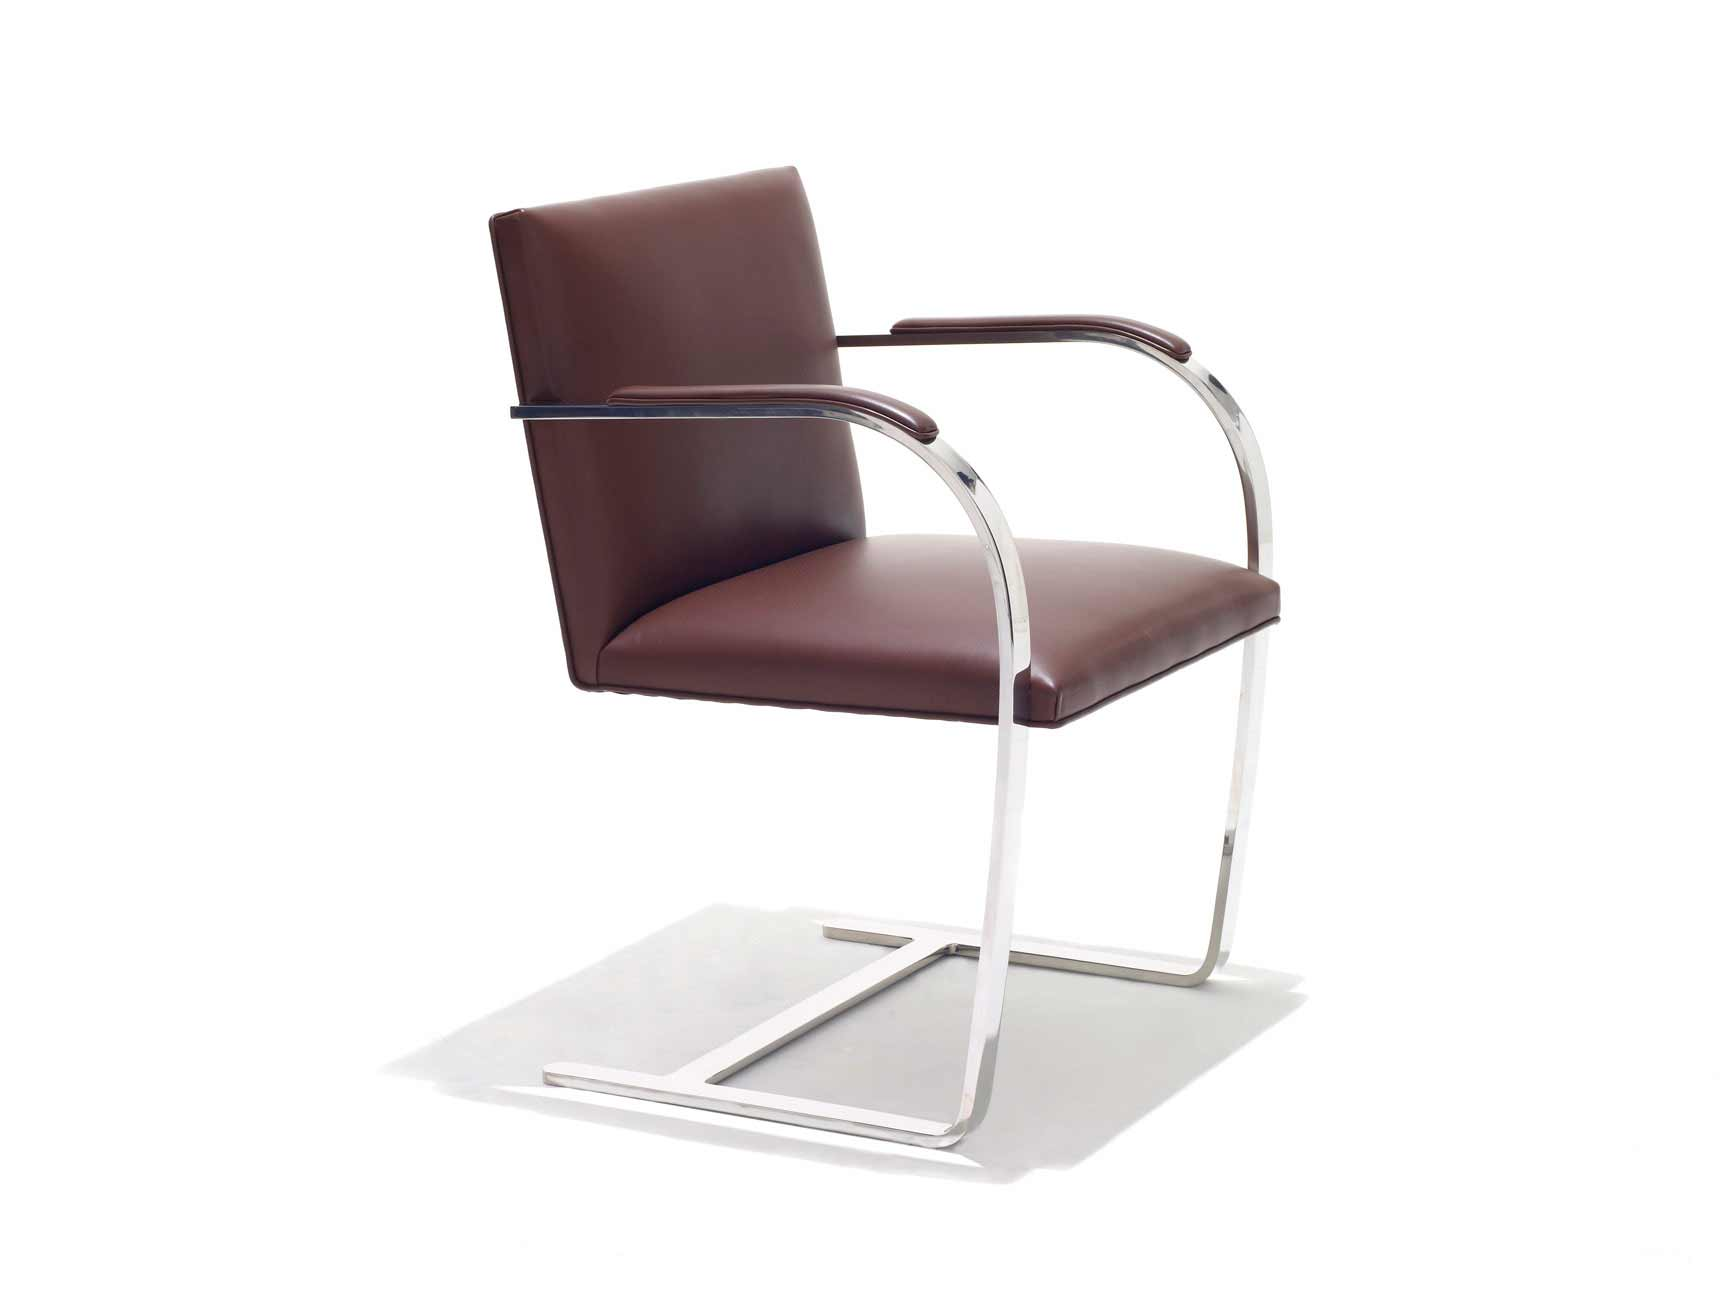 KnollStudio Brno stylish flat bar chairs with backs